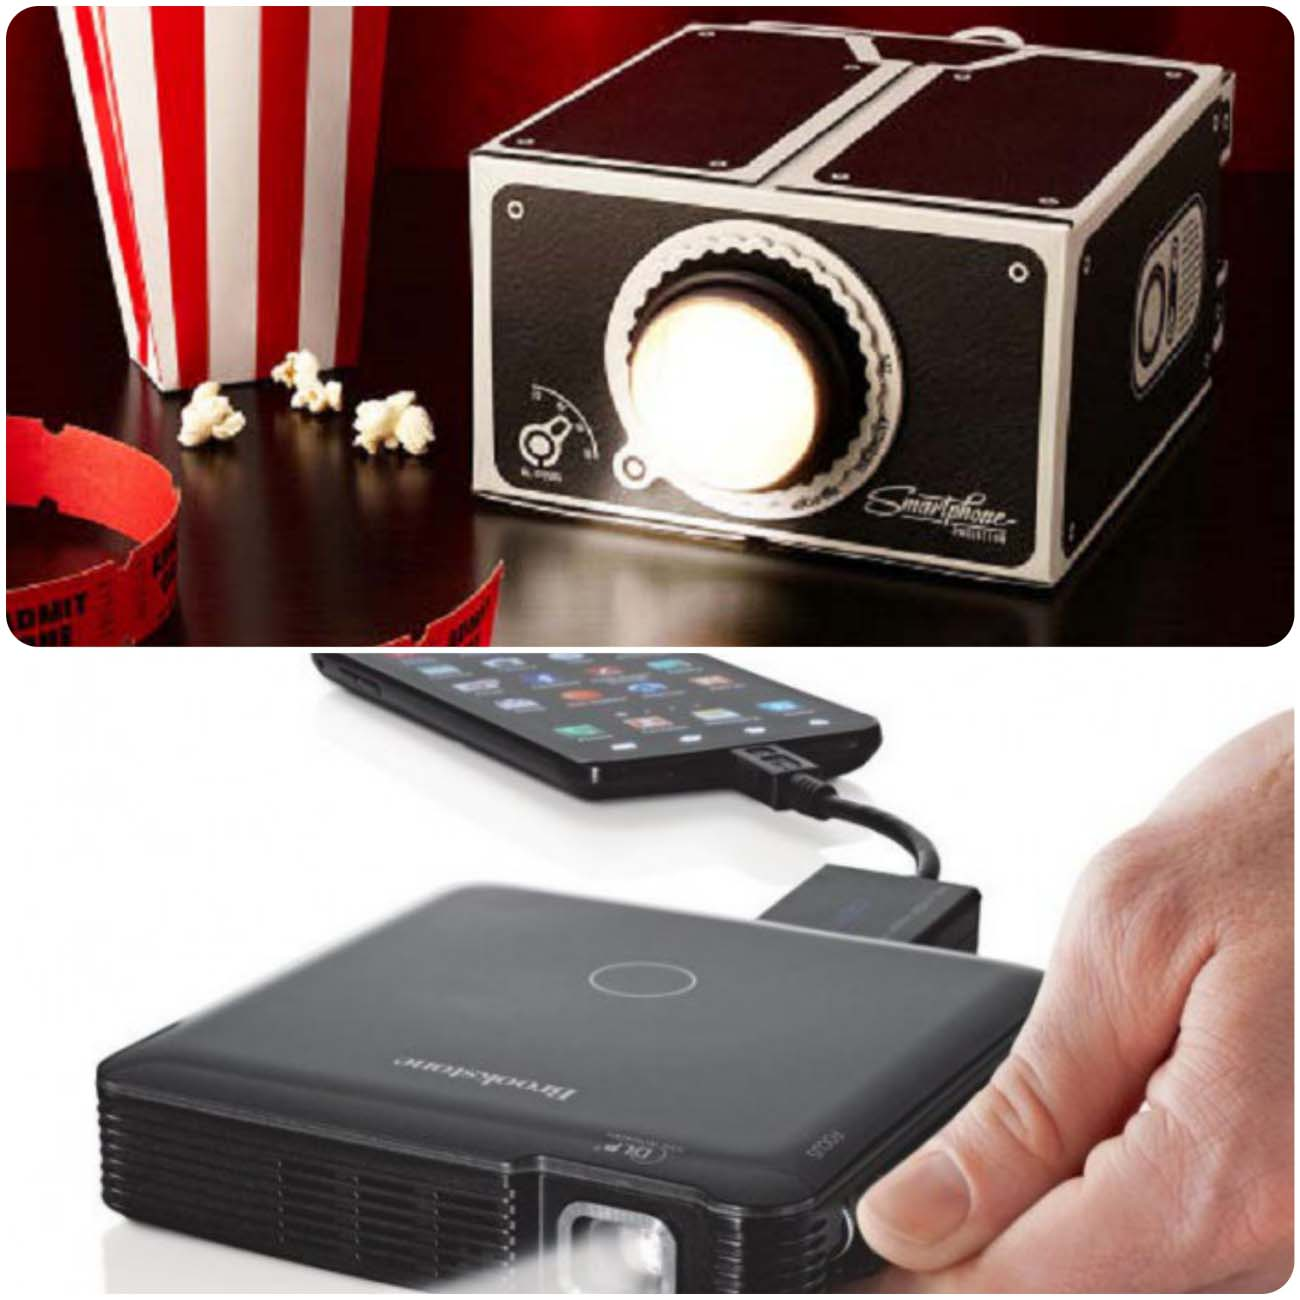 brookstone-pocket-LED-projector-battery-e1360949139686_Fotor_Collage